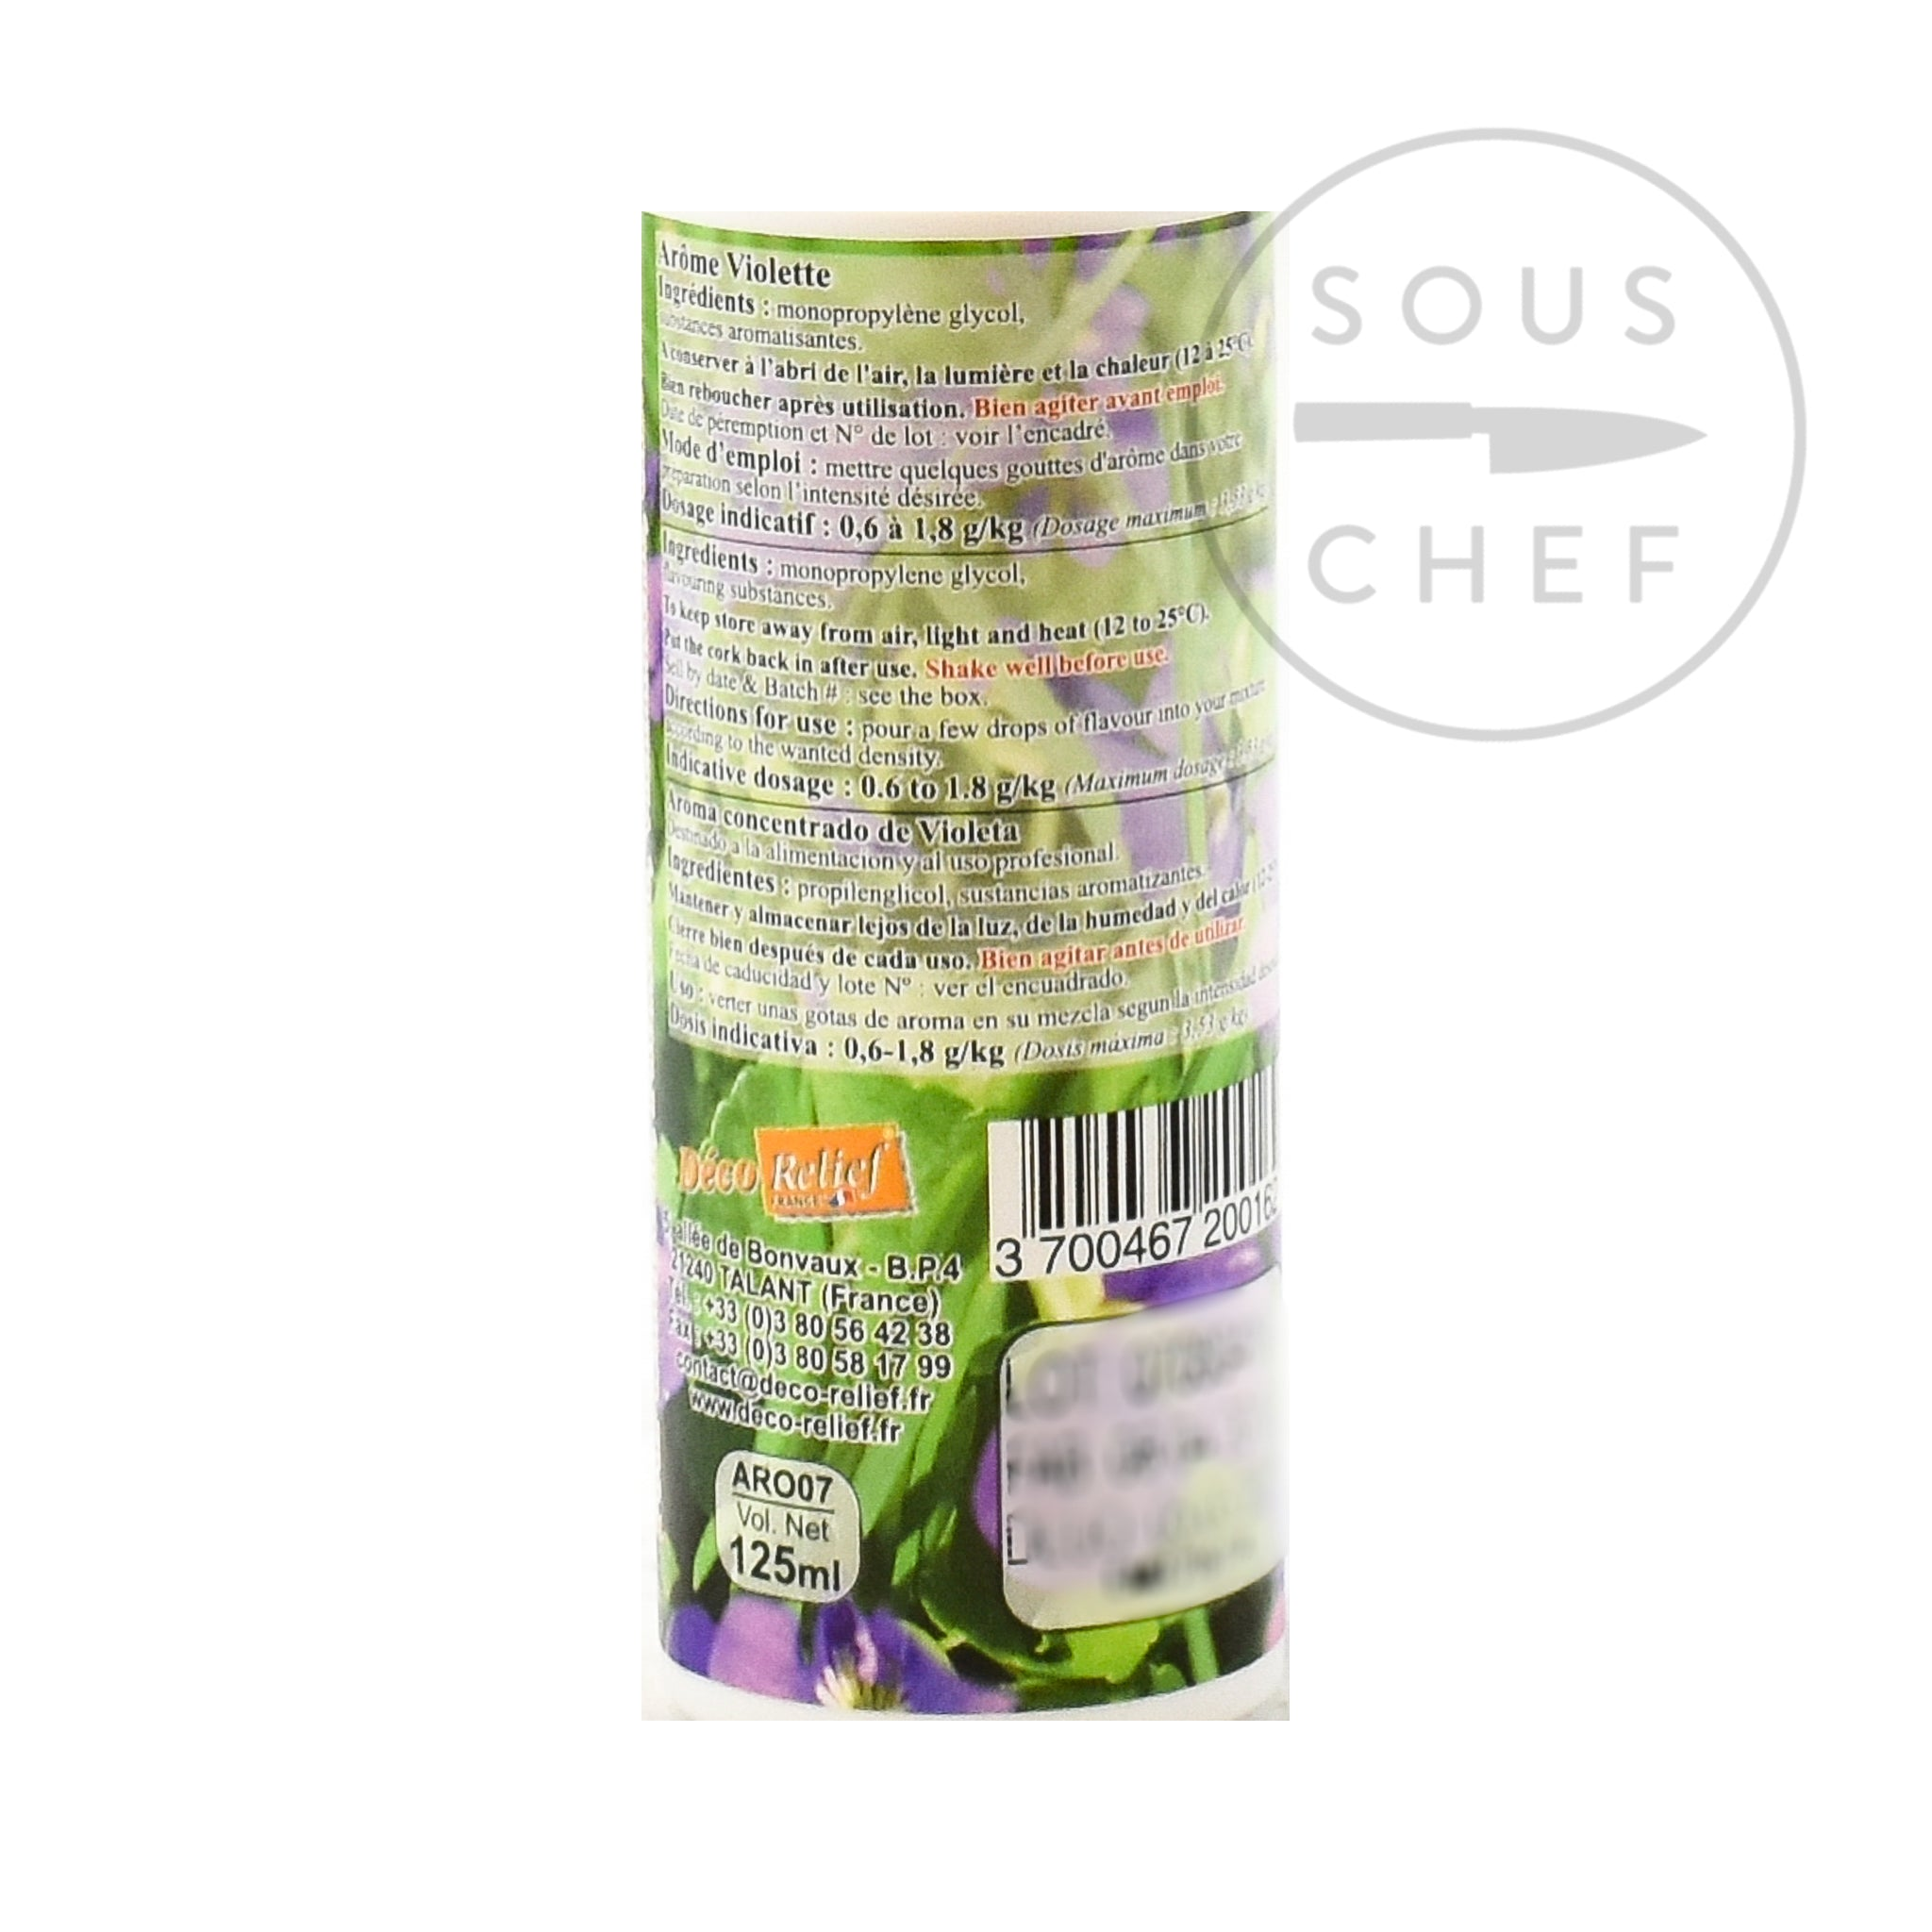 Concentrated Violet Flavour 125ml ingredients